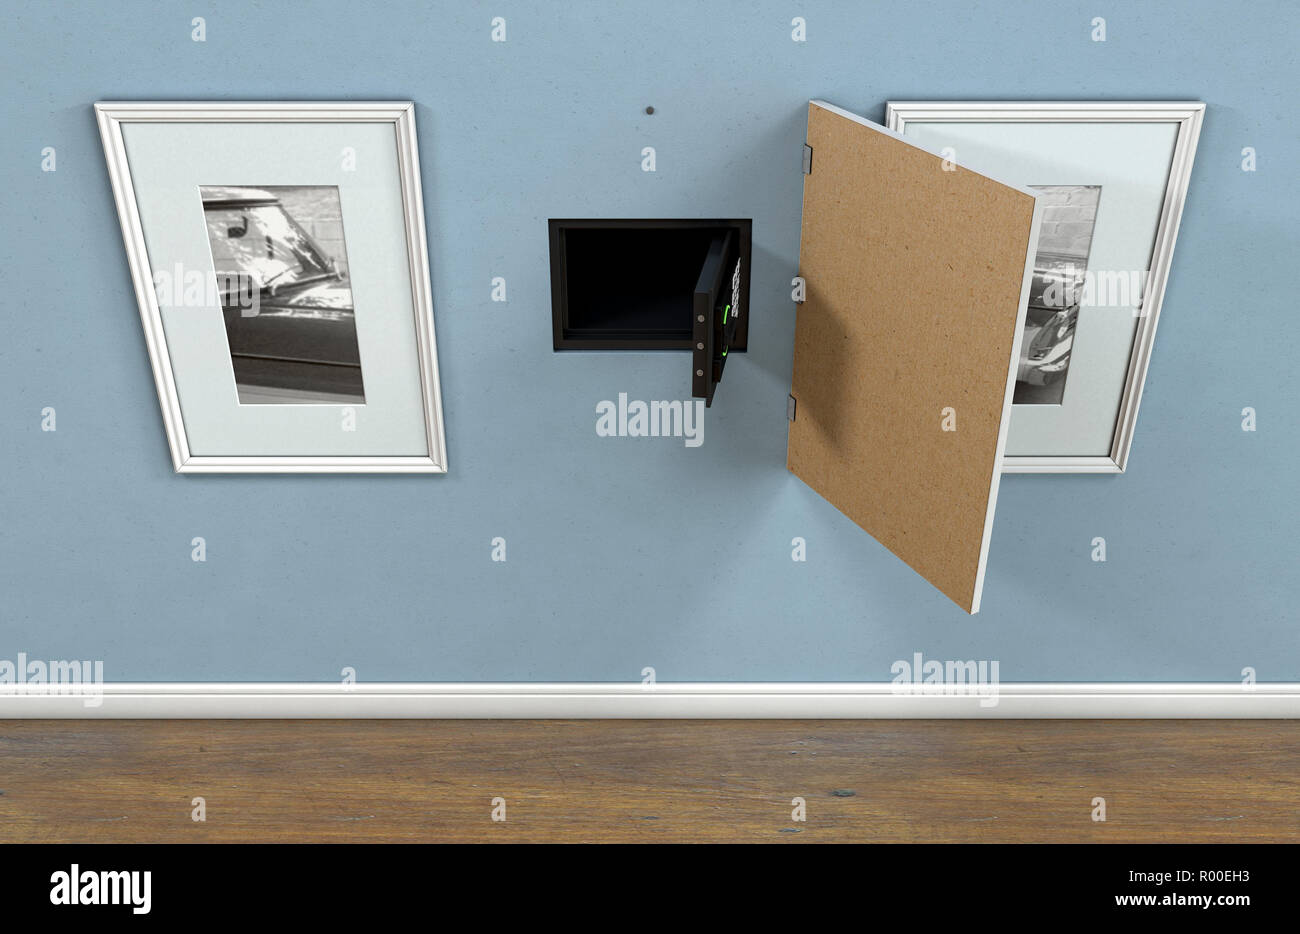 An Open Hidden Wall Safe Revealed Behind A Hanging Framed Picture On